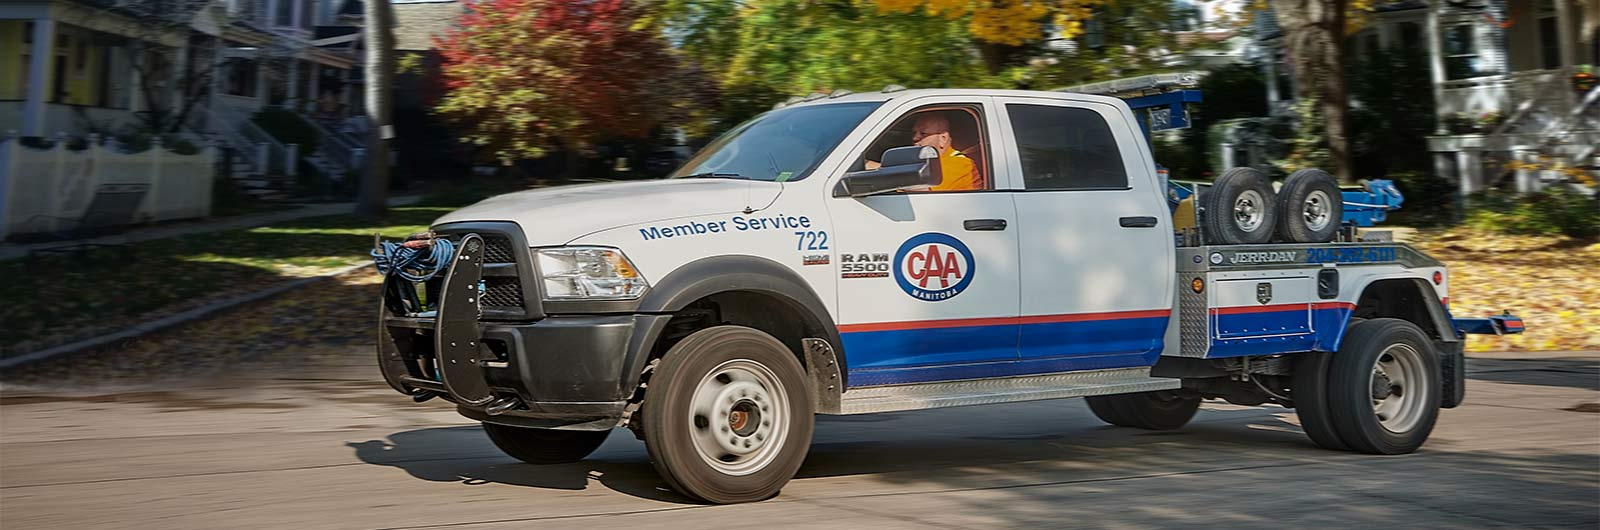 Image featuring CAA tow truck during autumn.